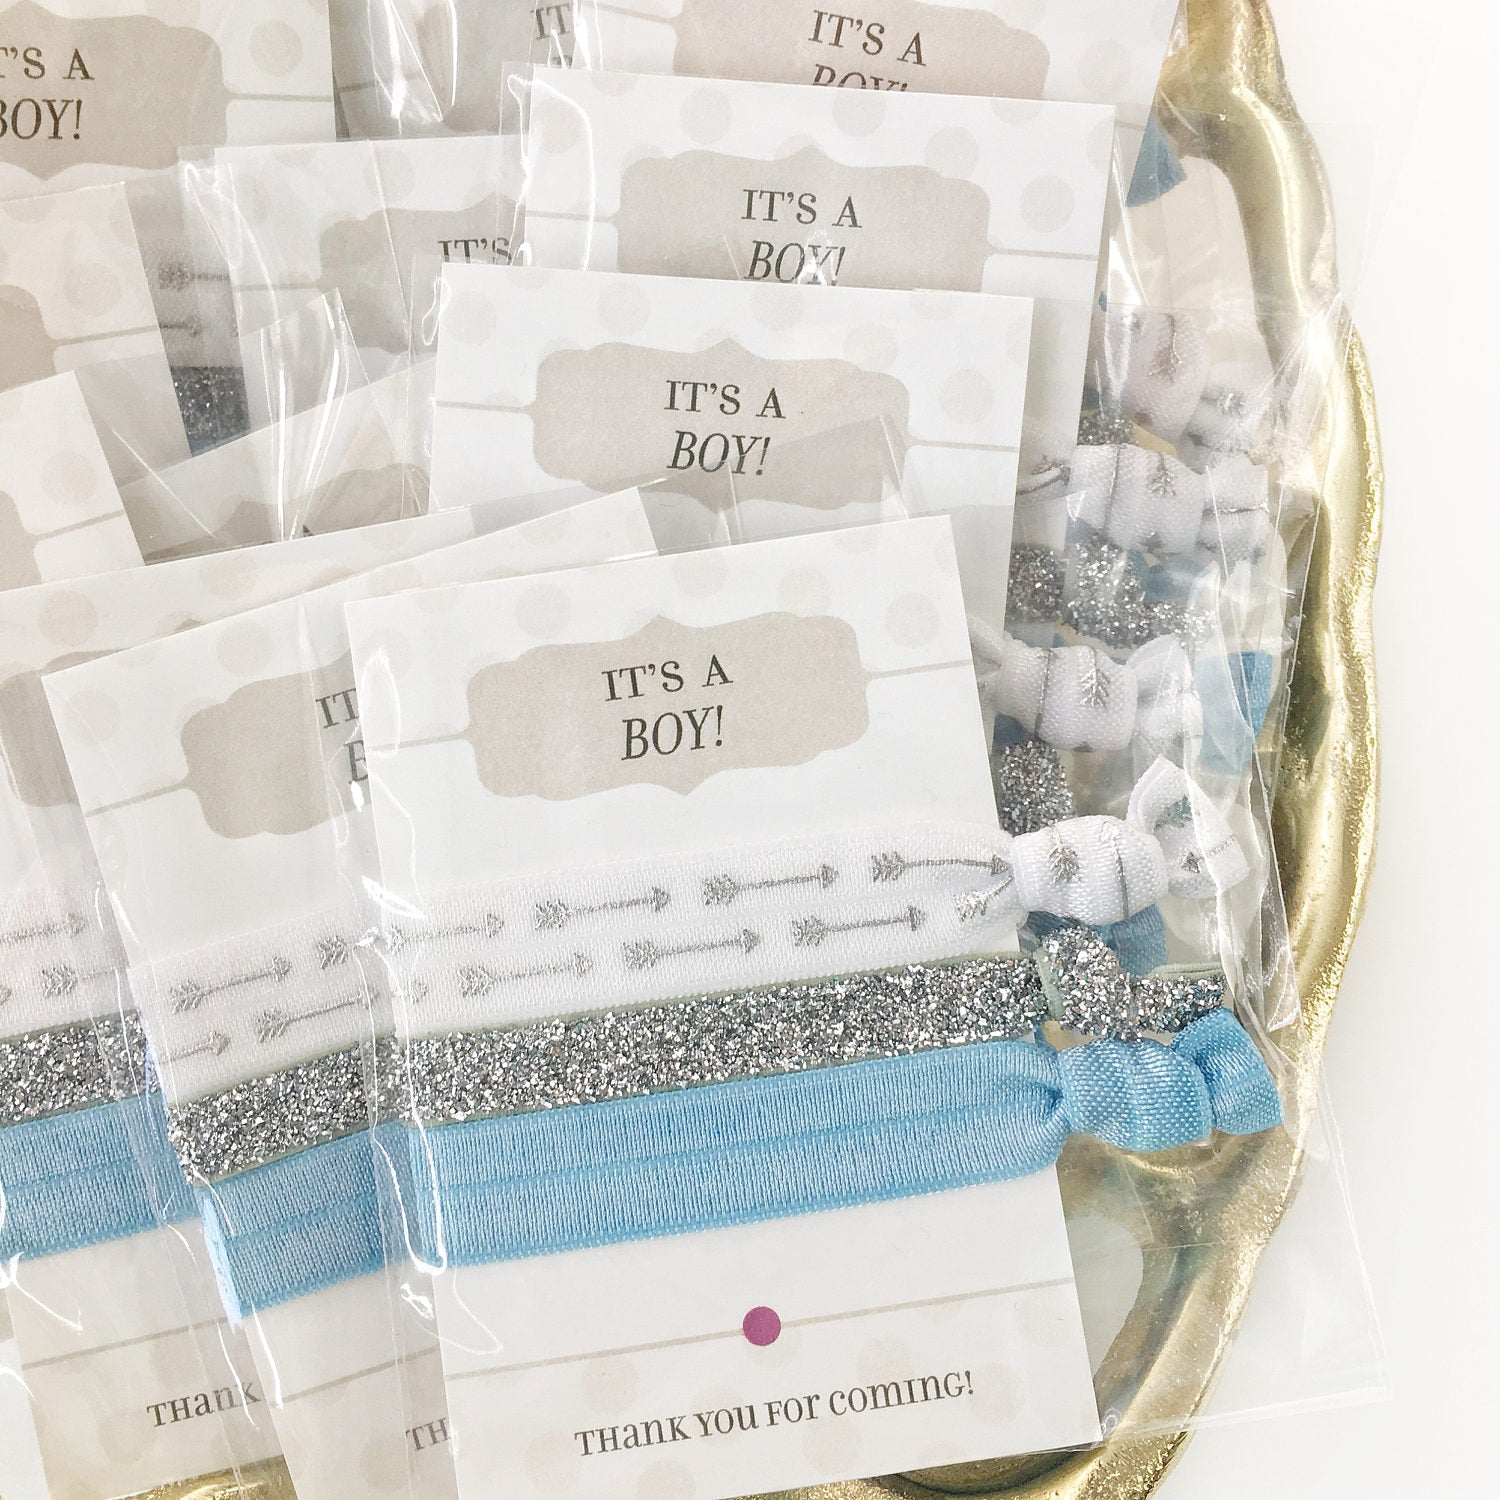 It's a Boy Baby Shower Favors - Blue Baby Shower Favors Boy - @PlumPolkaDot